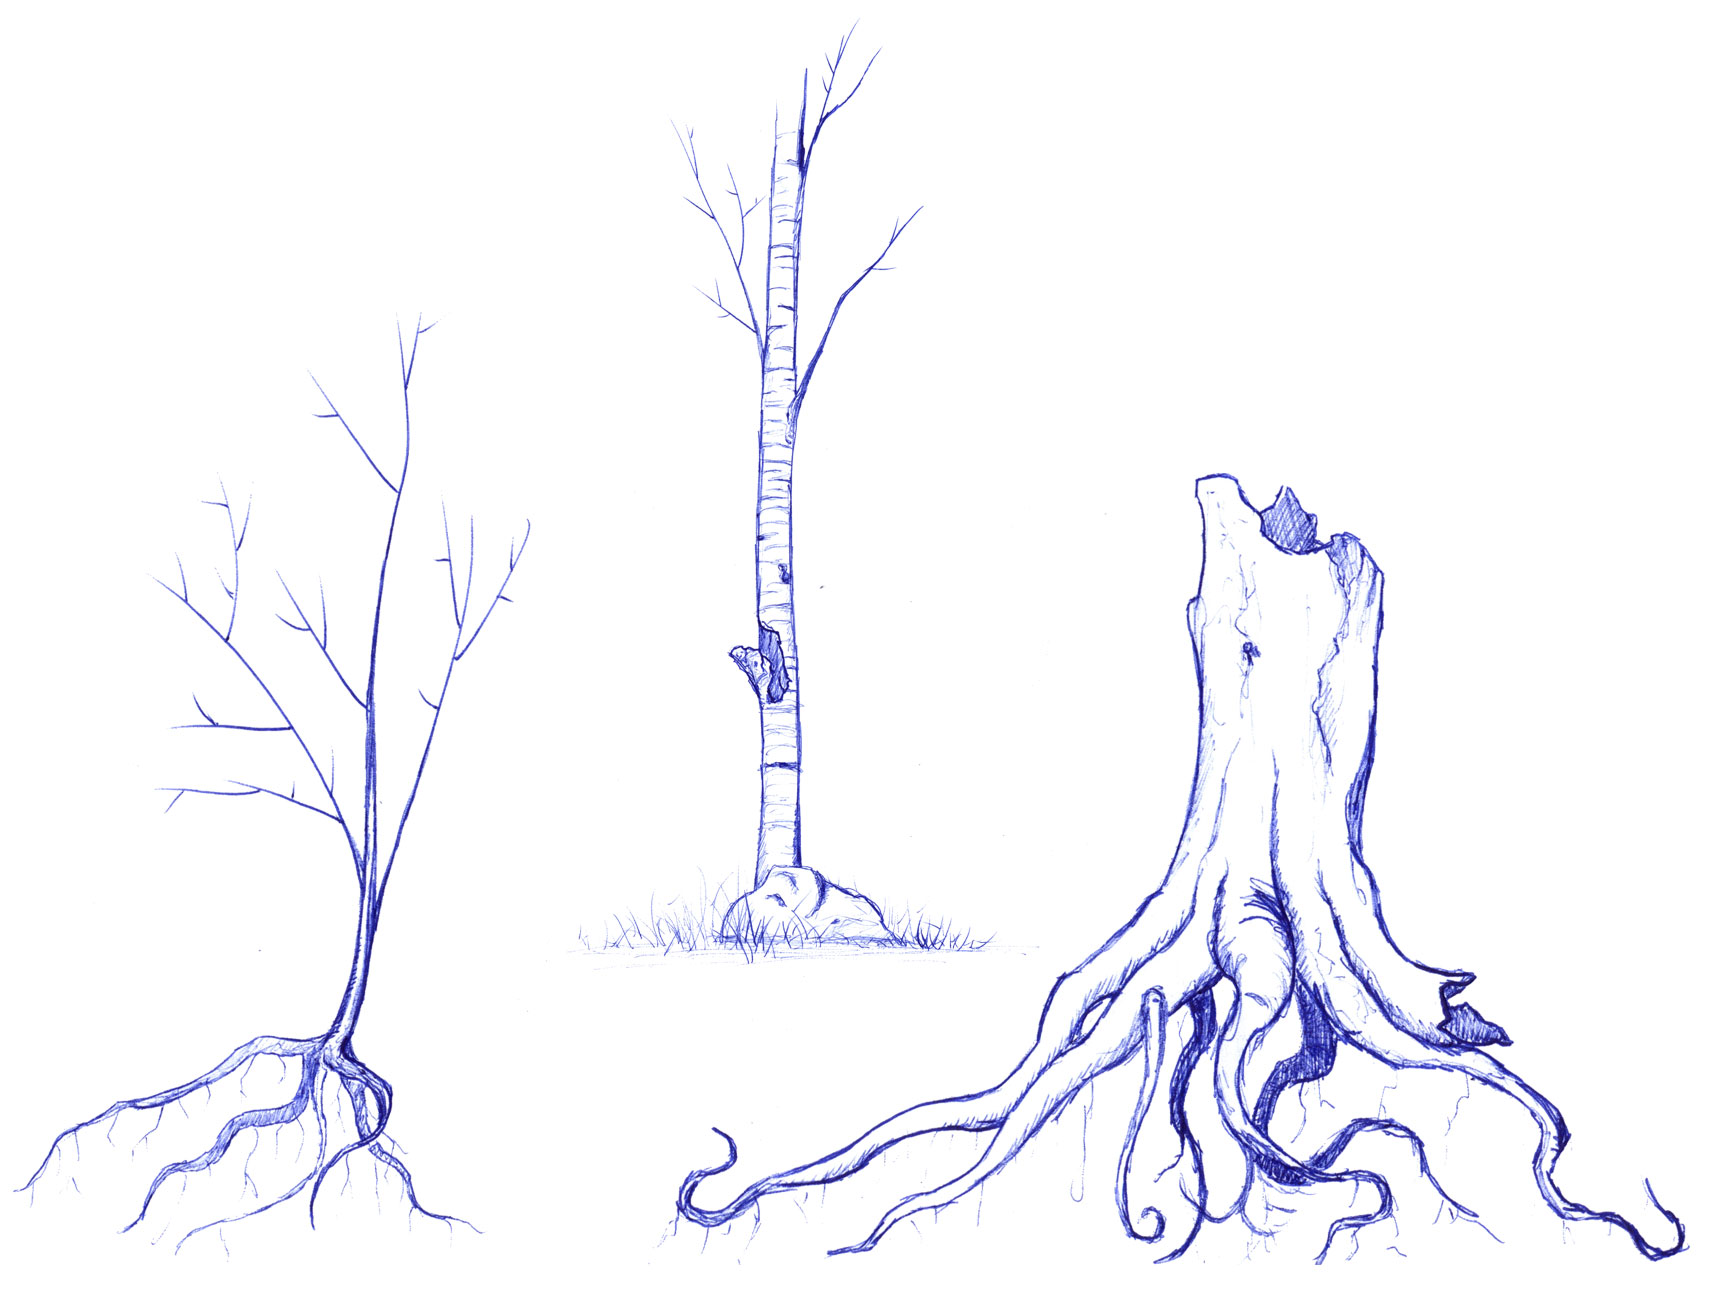 Tree Study & Exploration